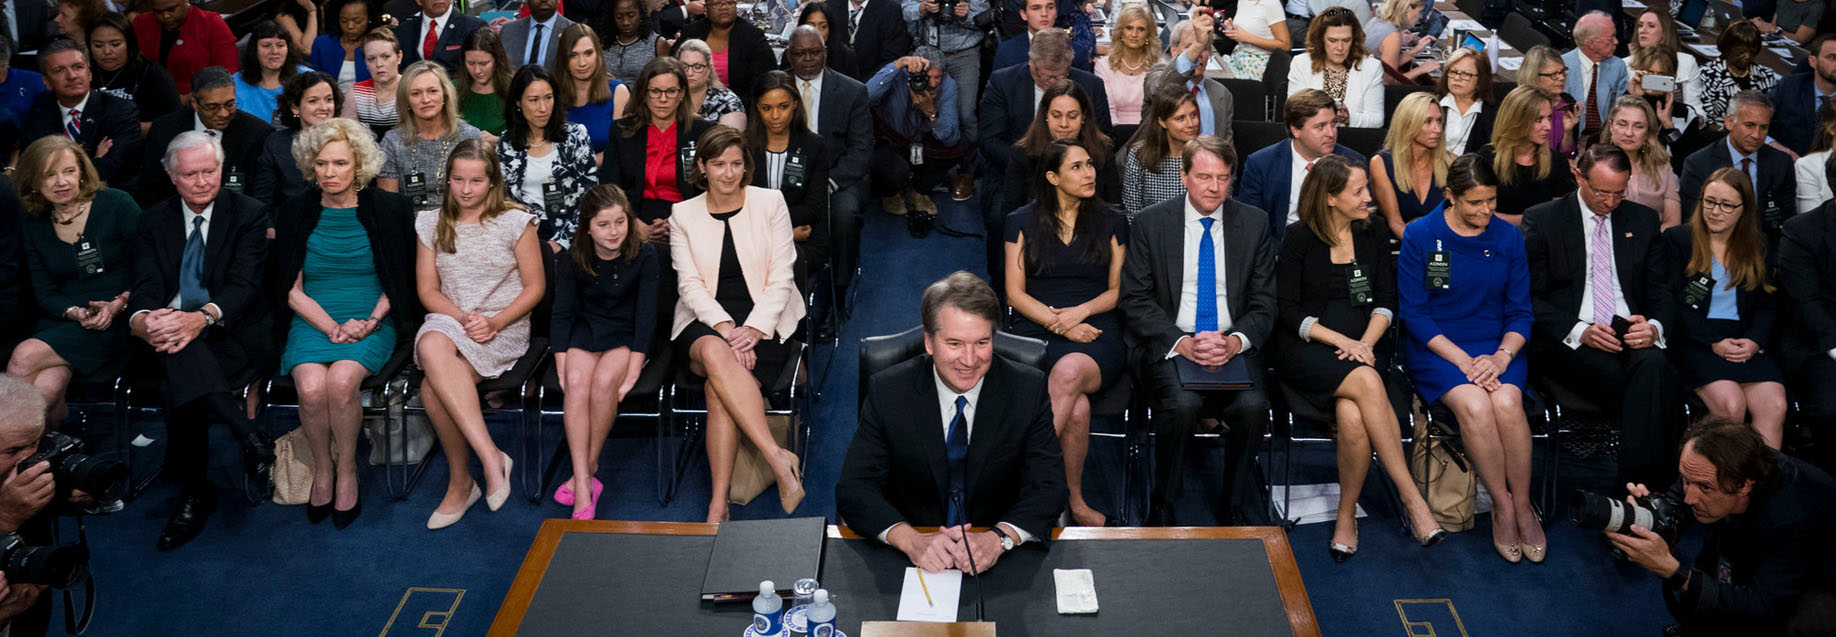 Kavanaugh hearings banner image